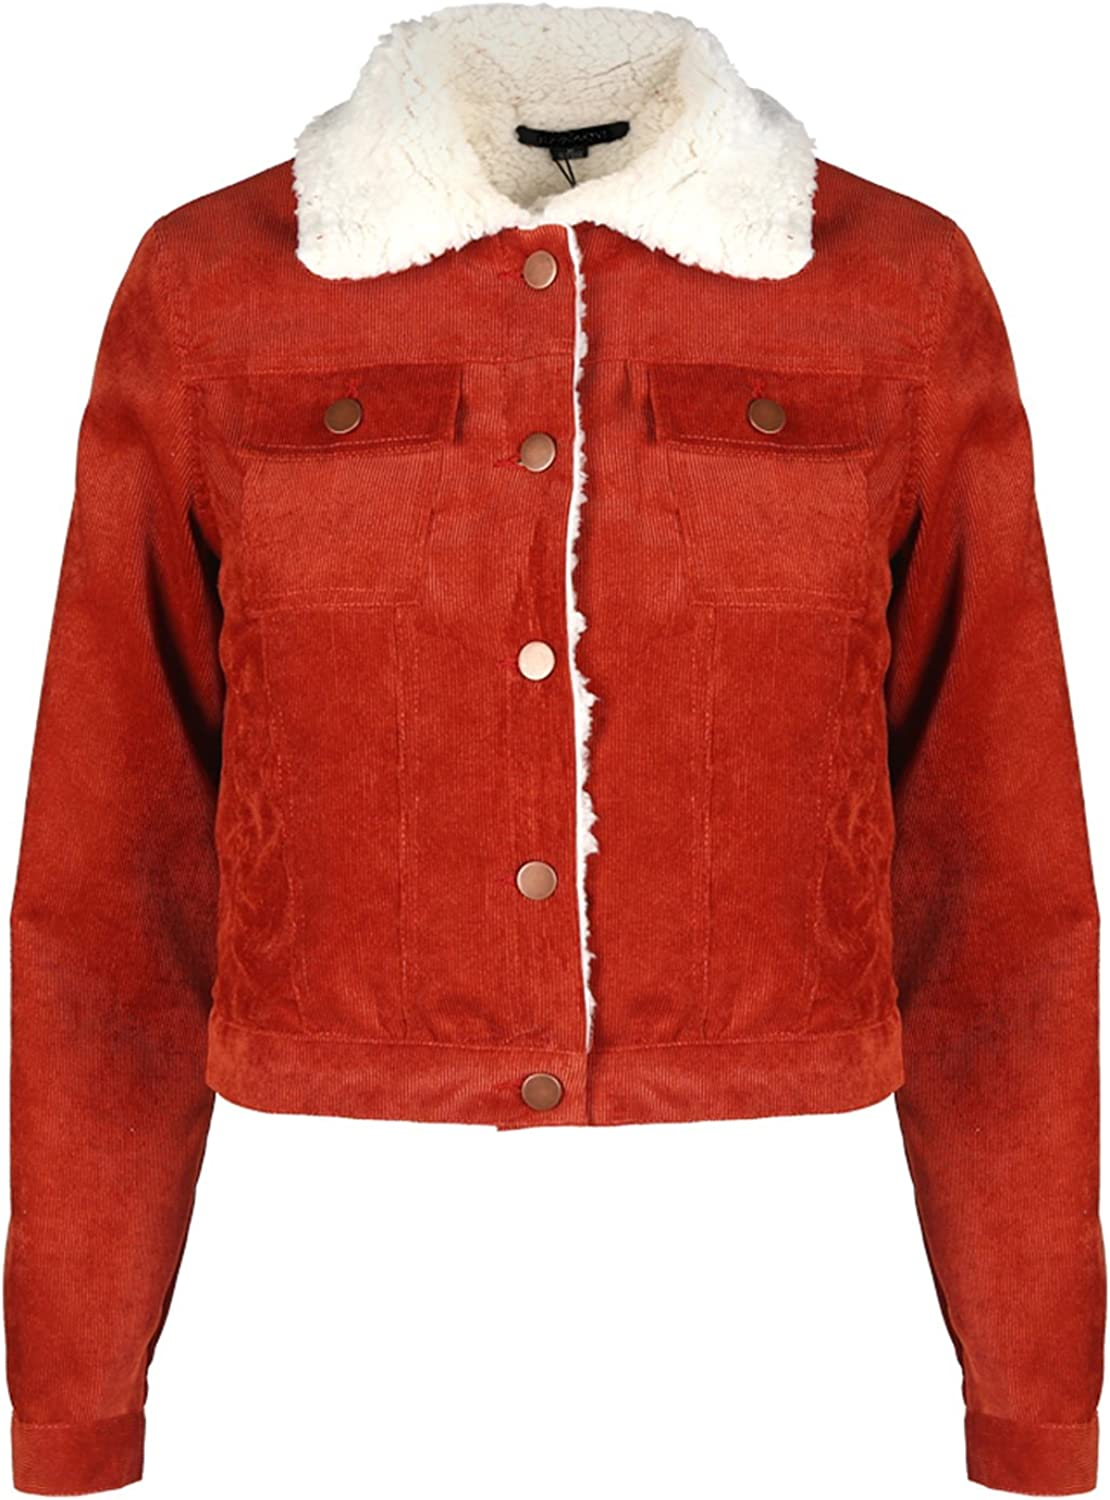 Gihuo Womens Vintage Long Sleeve Button Down Short Corduroy Jacket